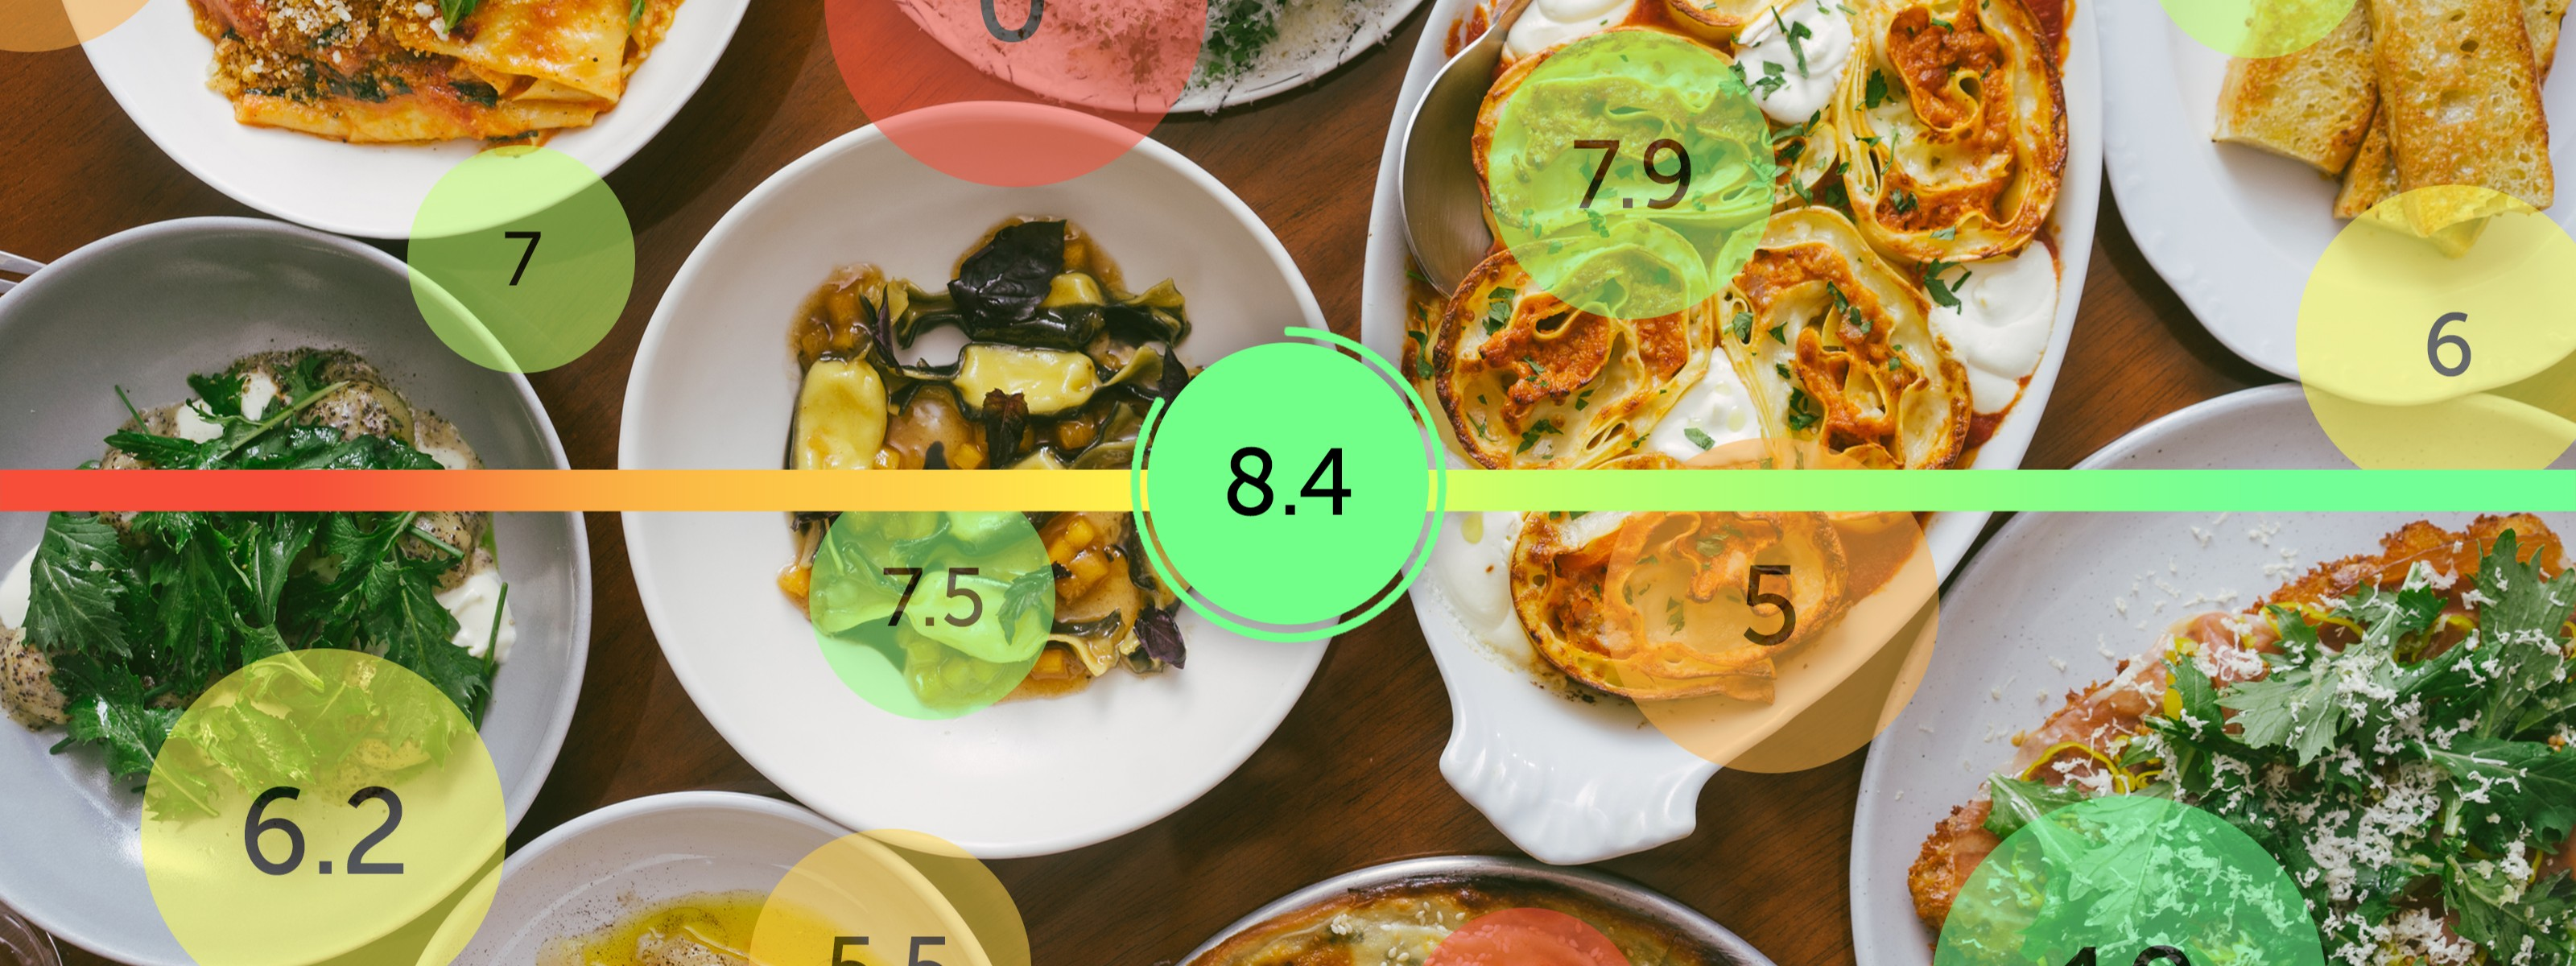 Our Restaurant Review Ratings Explainer - The Infatuation